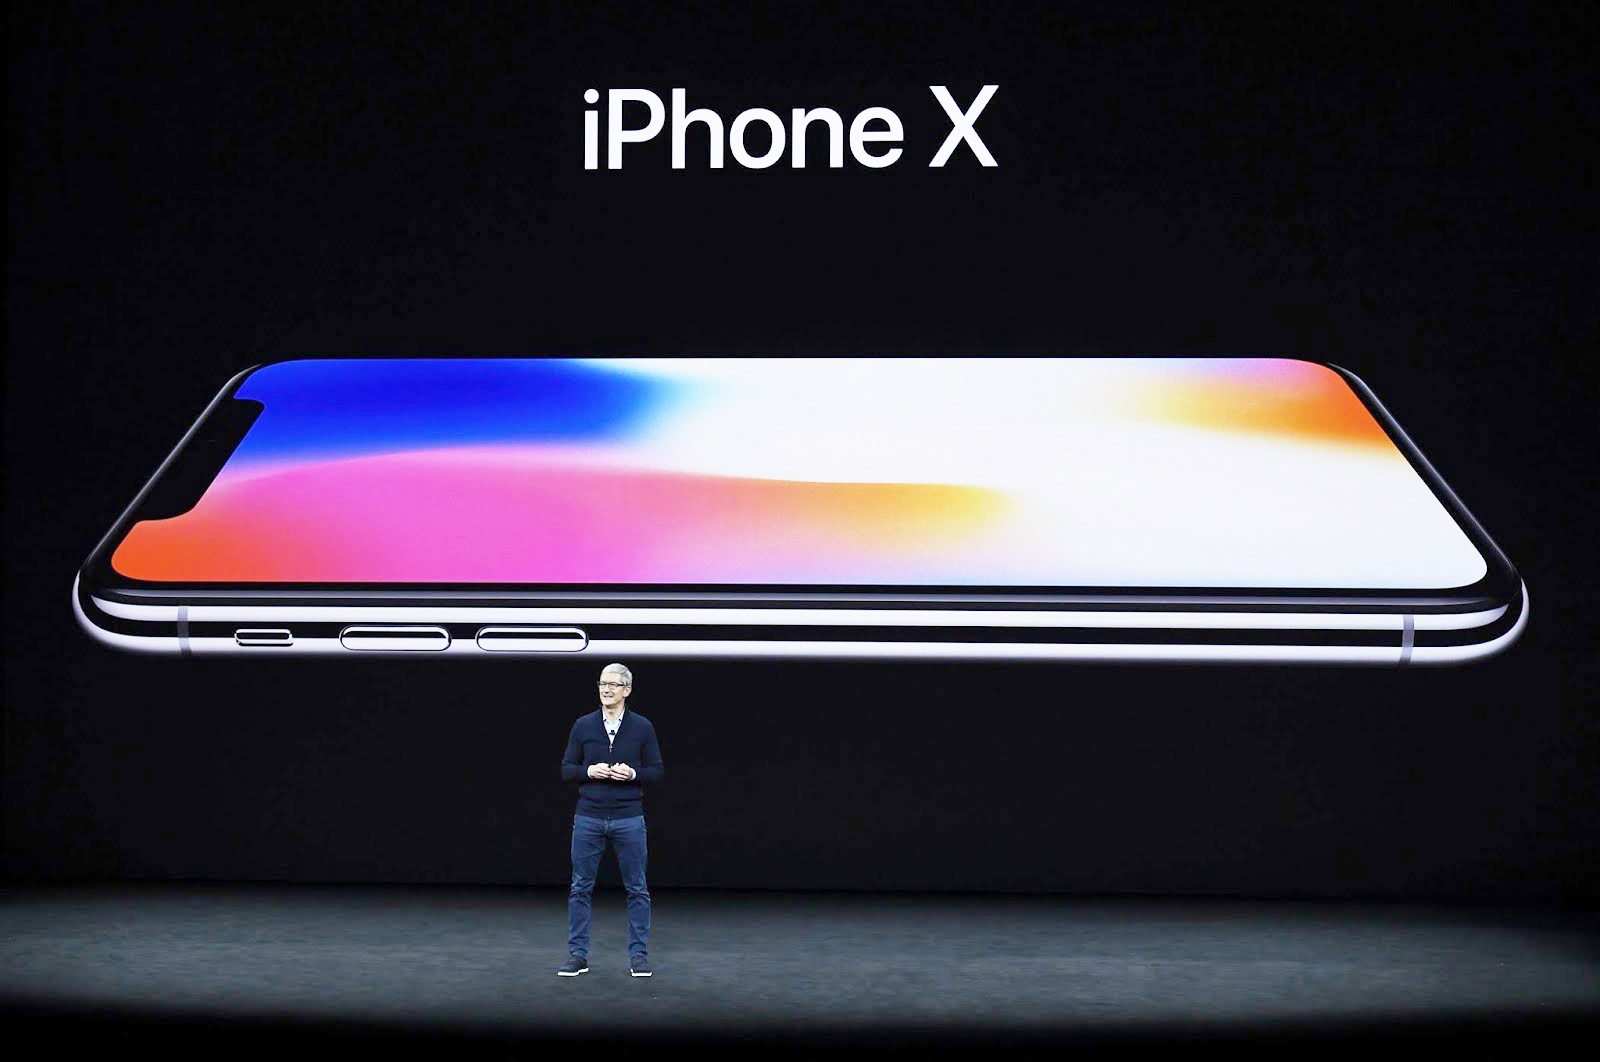 Iphone X Features The Postillon These 8 Features Make The Iphone X The Best